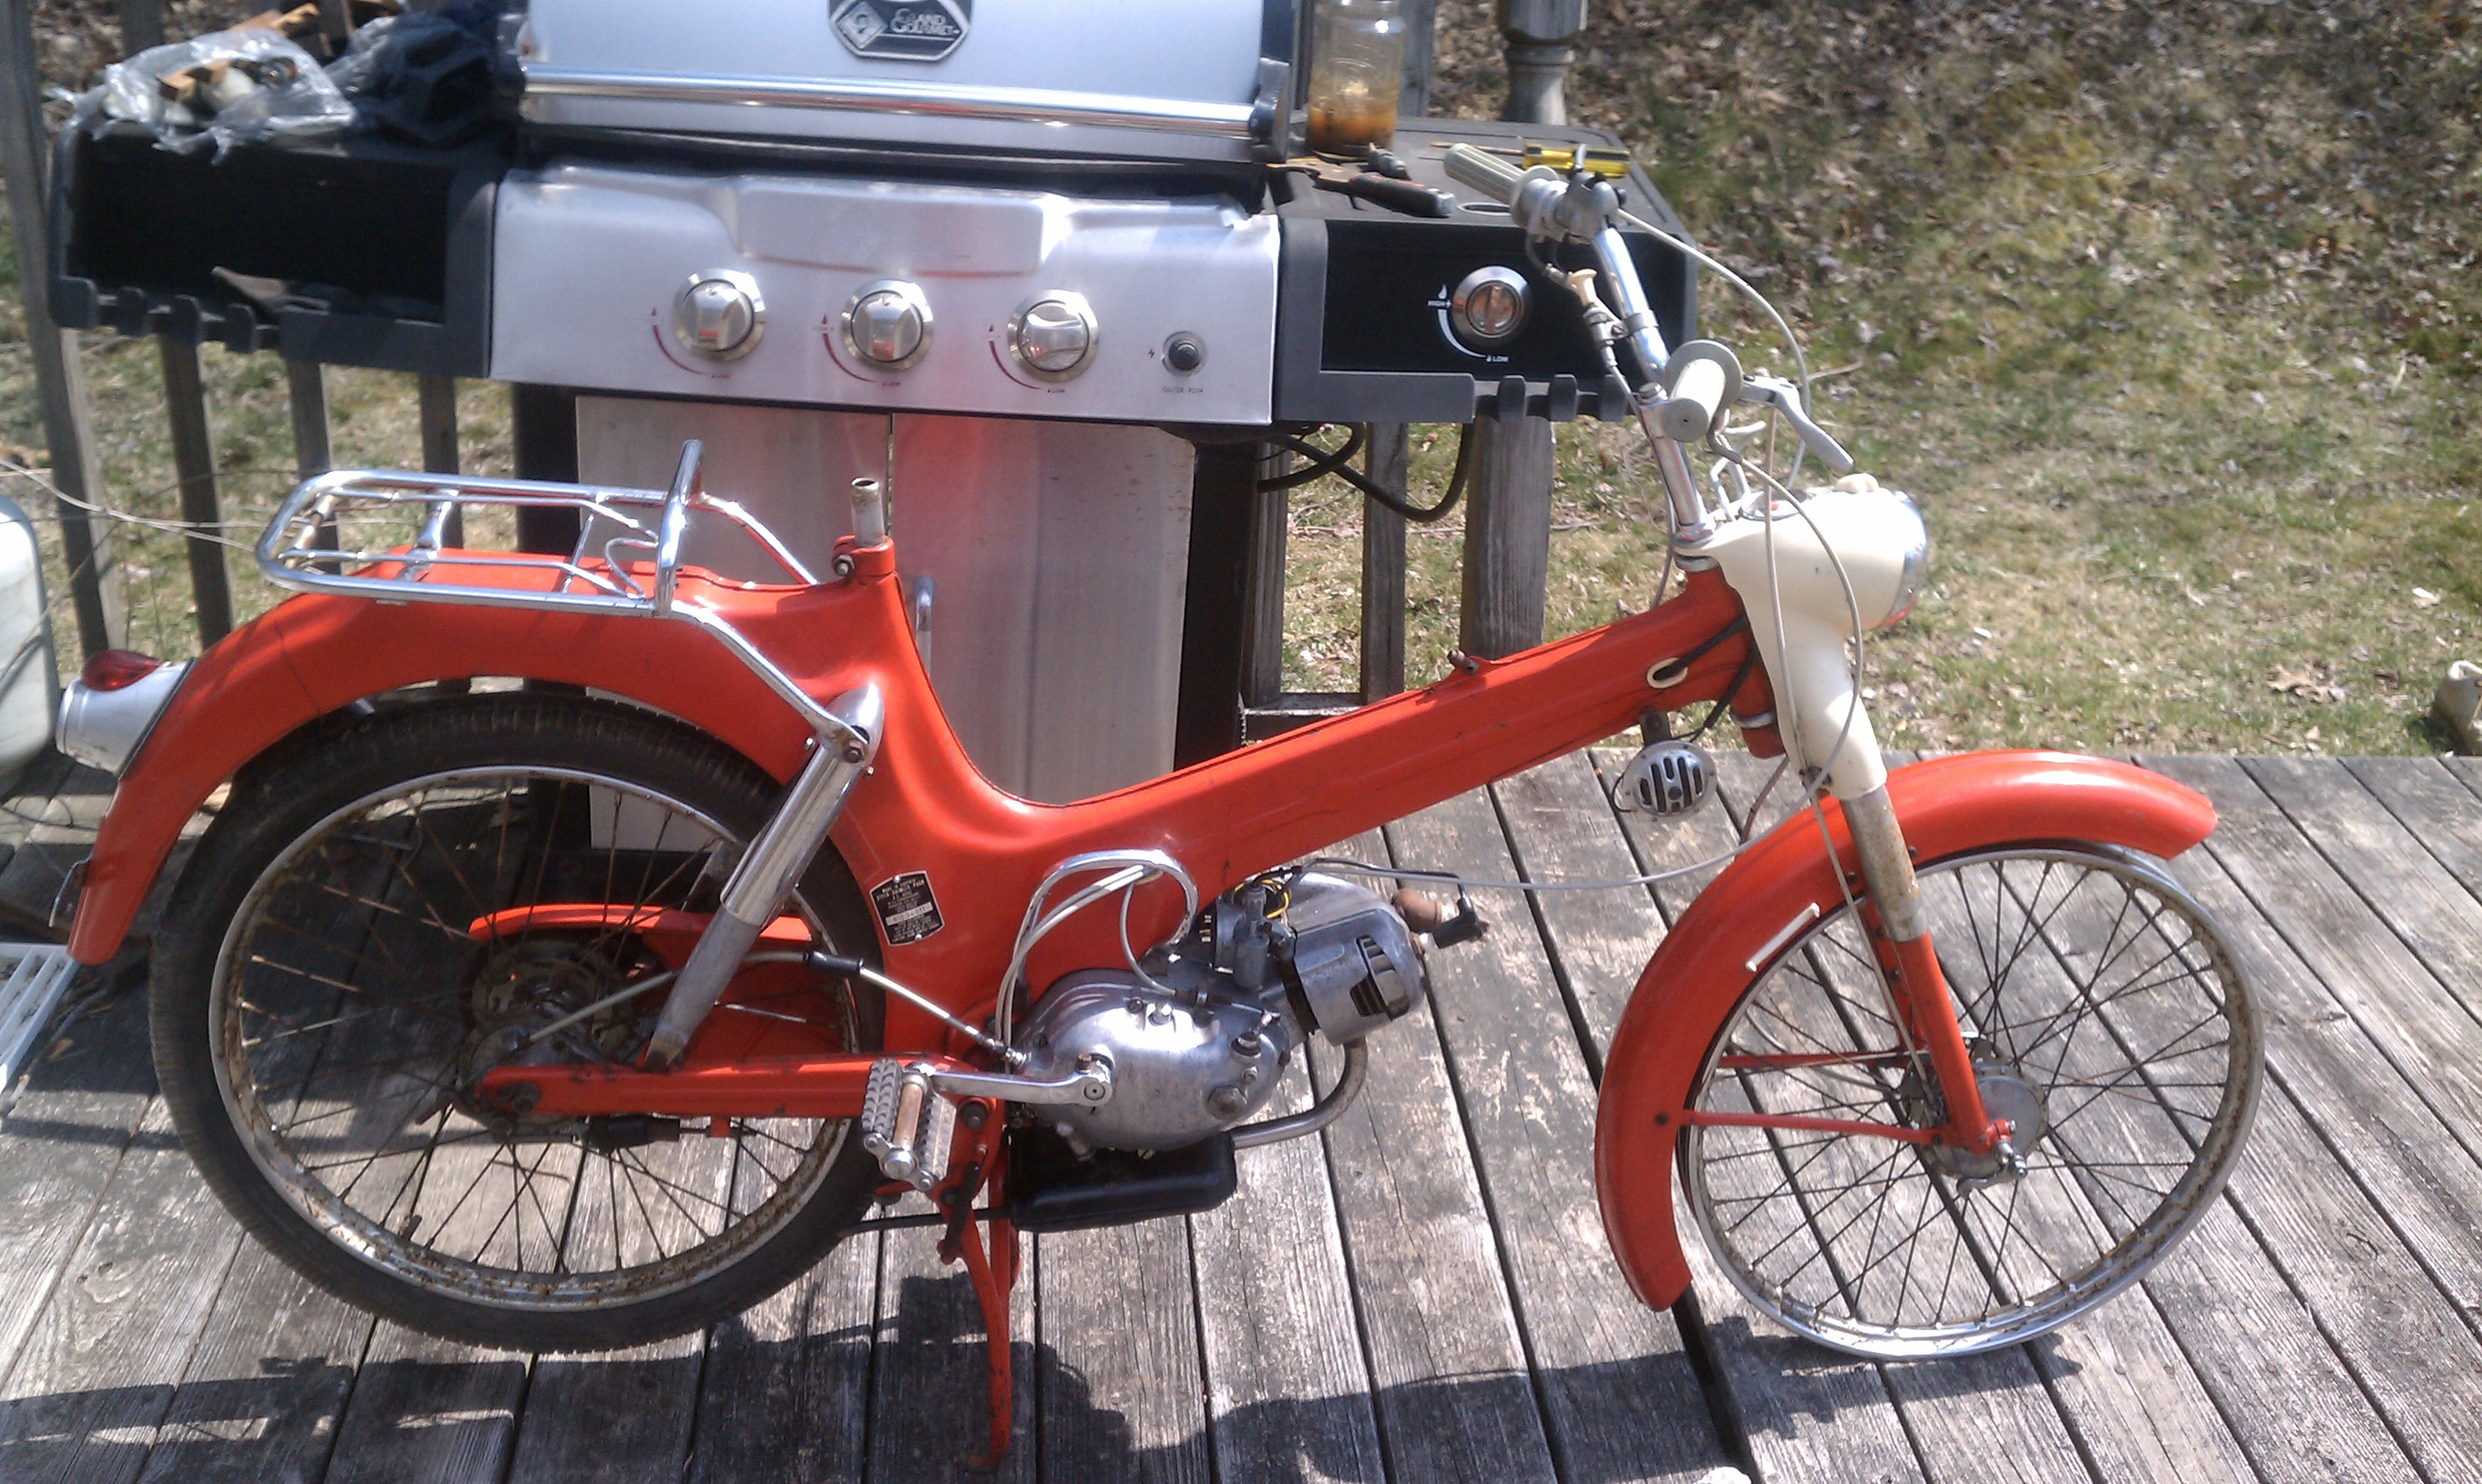 Military Tank For Sale >> 1960 Puch allstate moped [by thomas665] — Moped Army